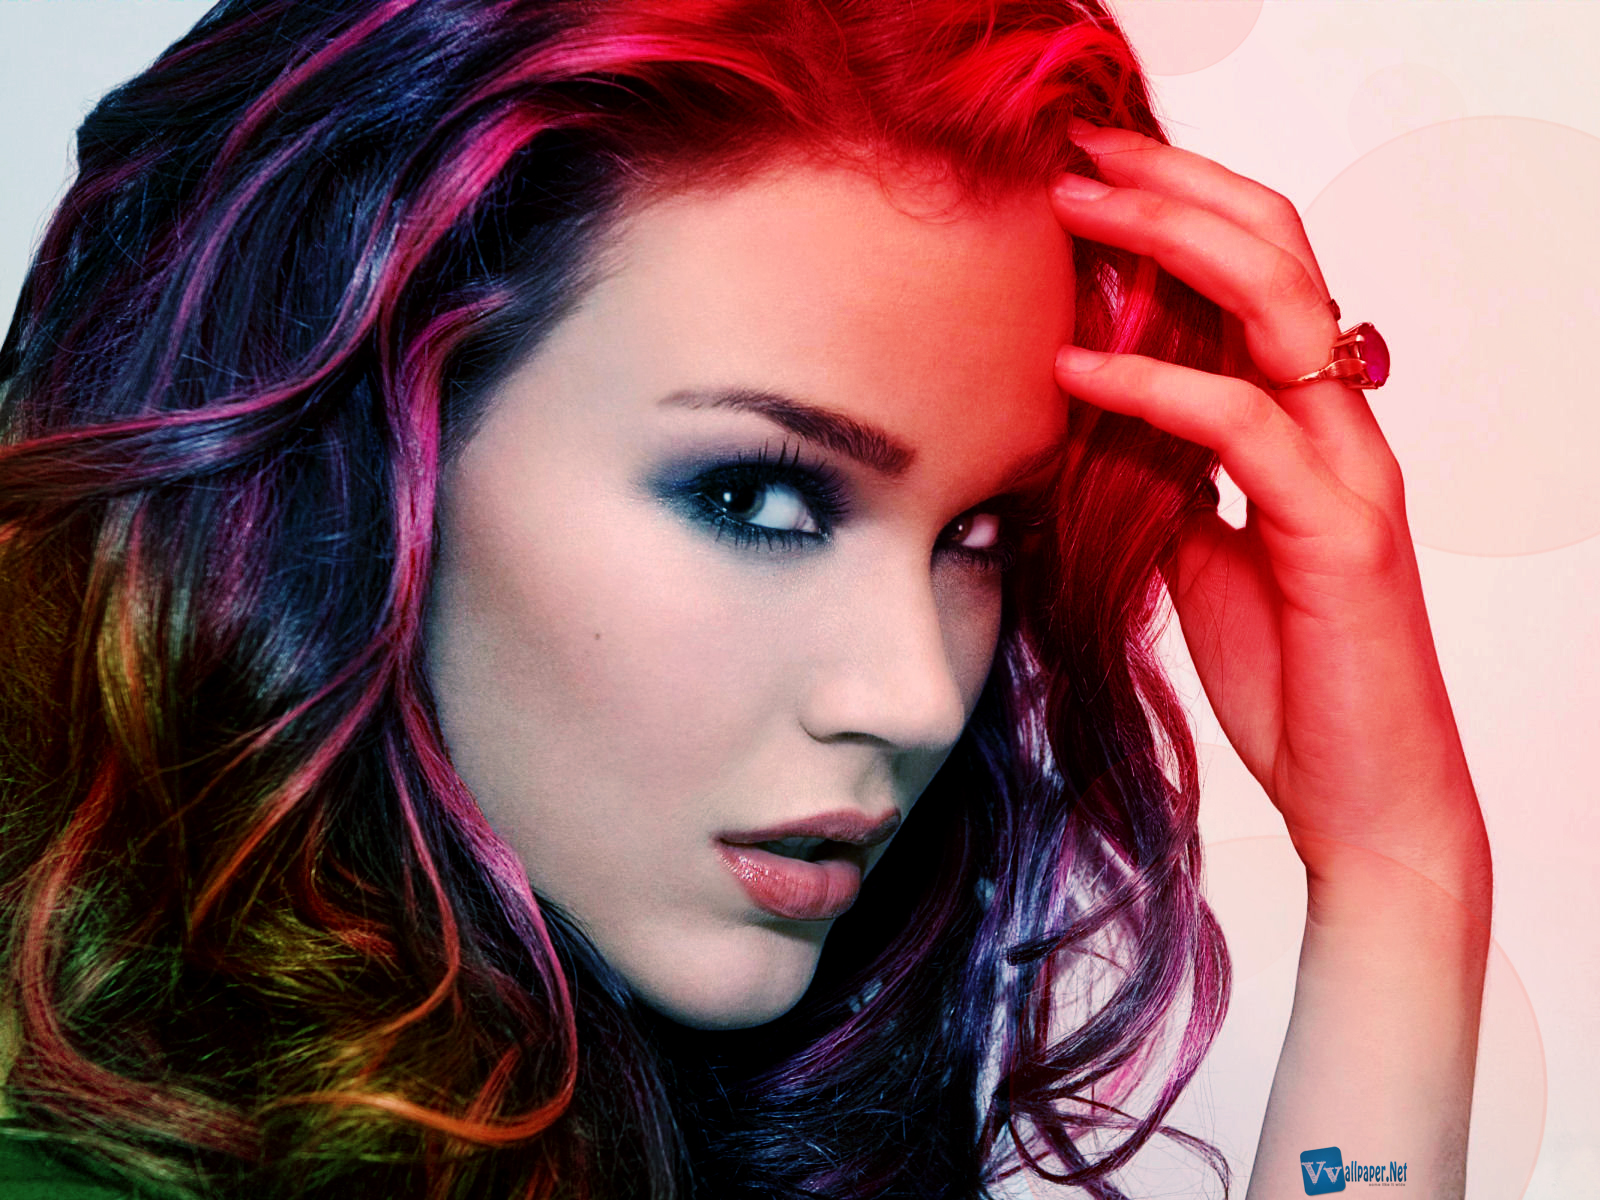 http://3.bp.blogspot.com/-63wVuPBpejk/UBQPoK05NoI/AAAAAAAADHI/sp4VvQ8KanI/s1600/Joss_Stone_Red_Hair_HD_Wallpaper-by-Vvallpaper.net.jpg